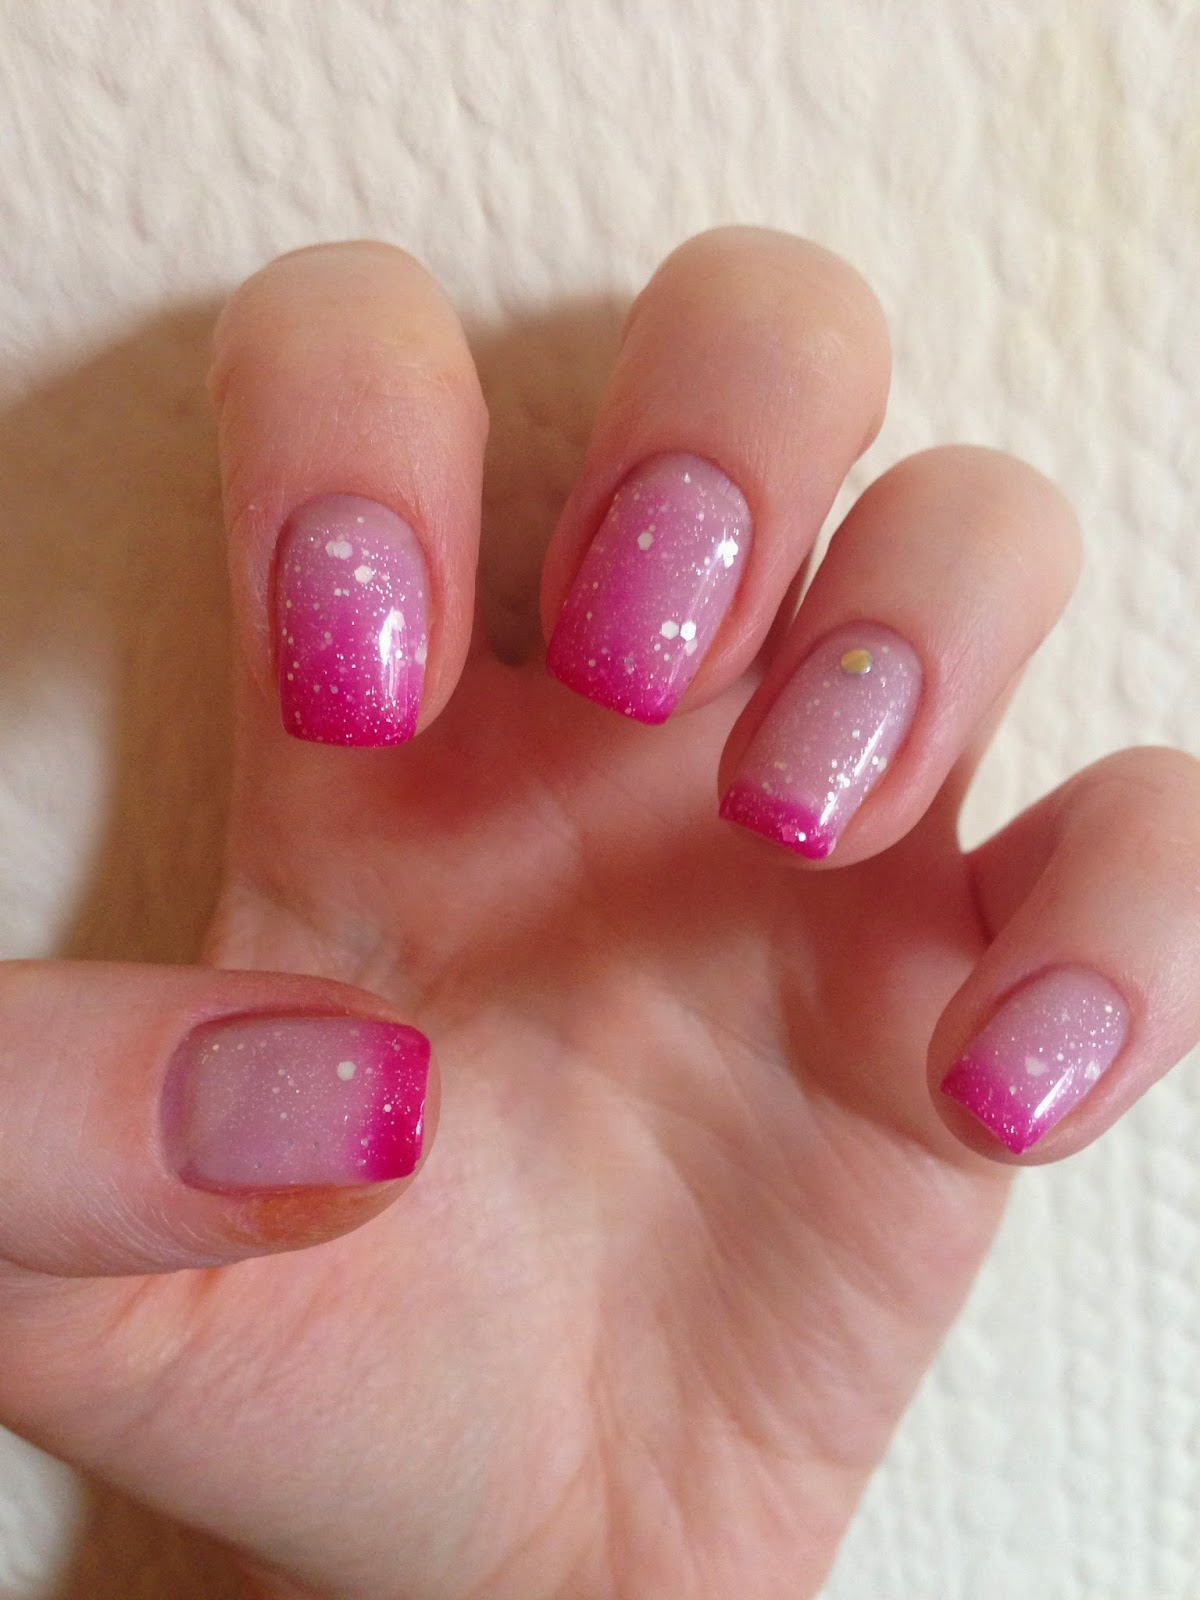 NailsByNumbers: DIY Hard Nails - Colour Changing Gel Polish Review